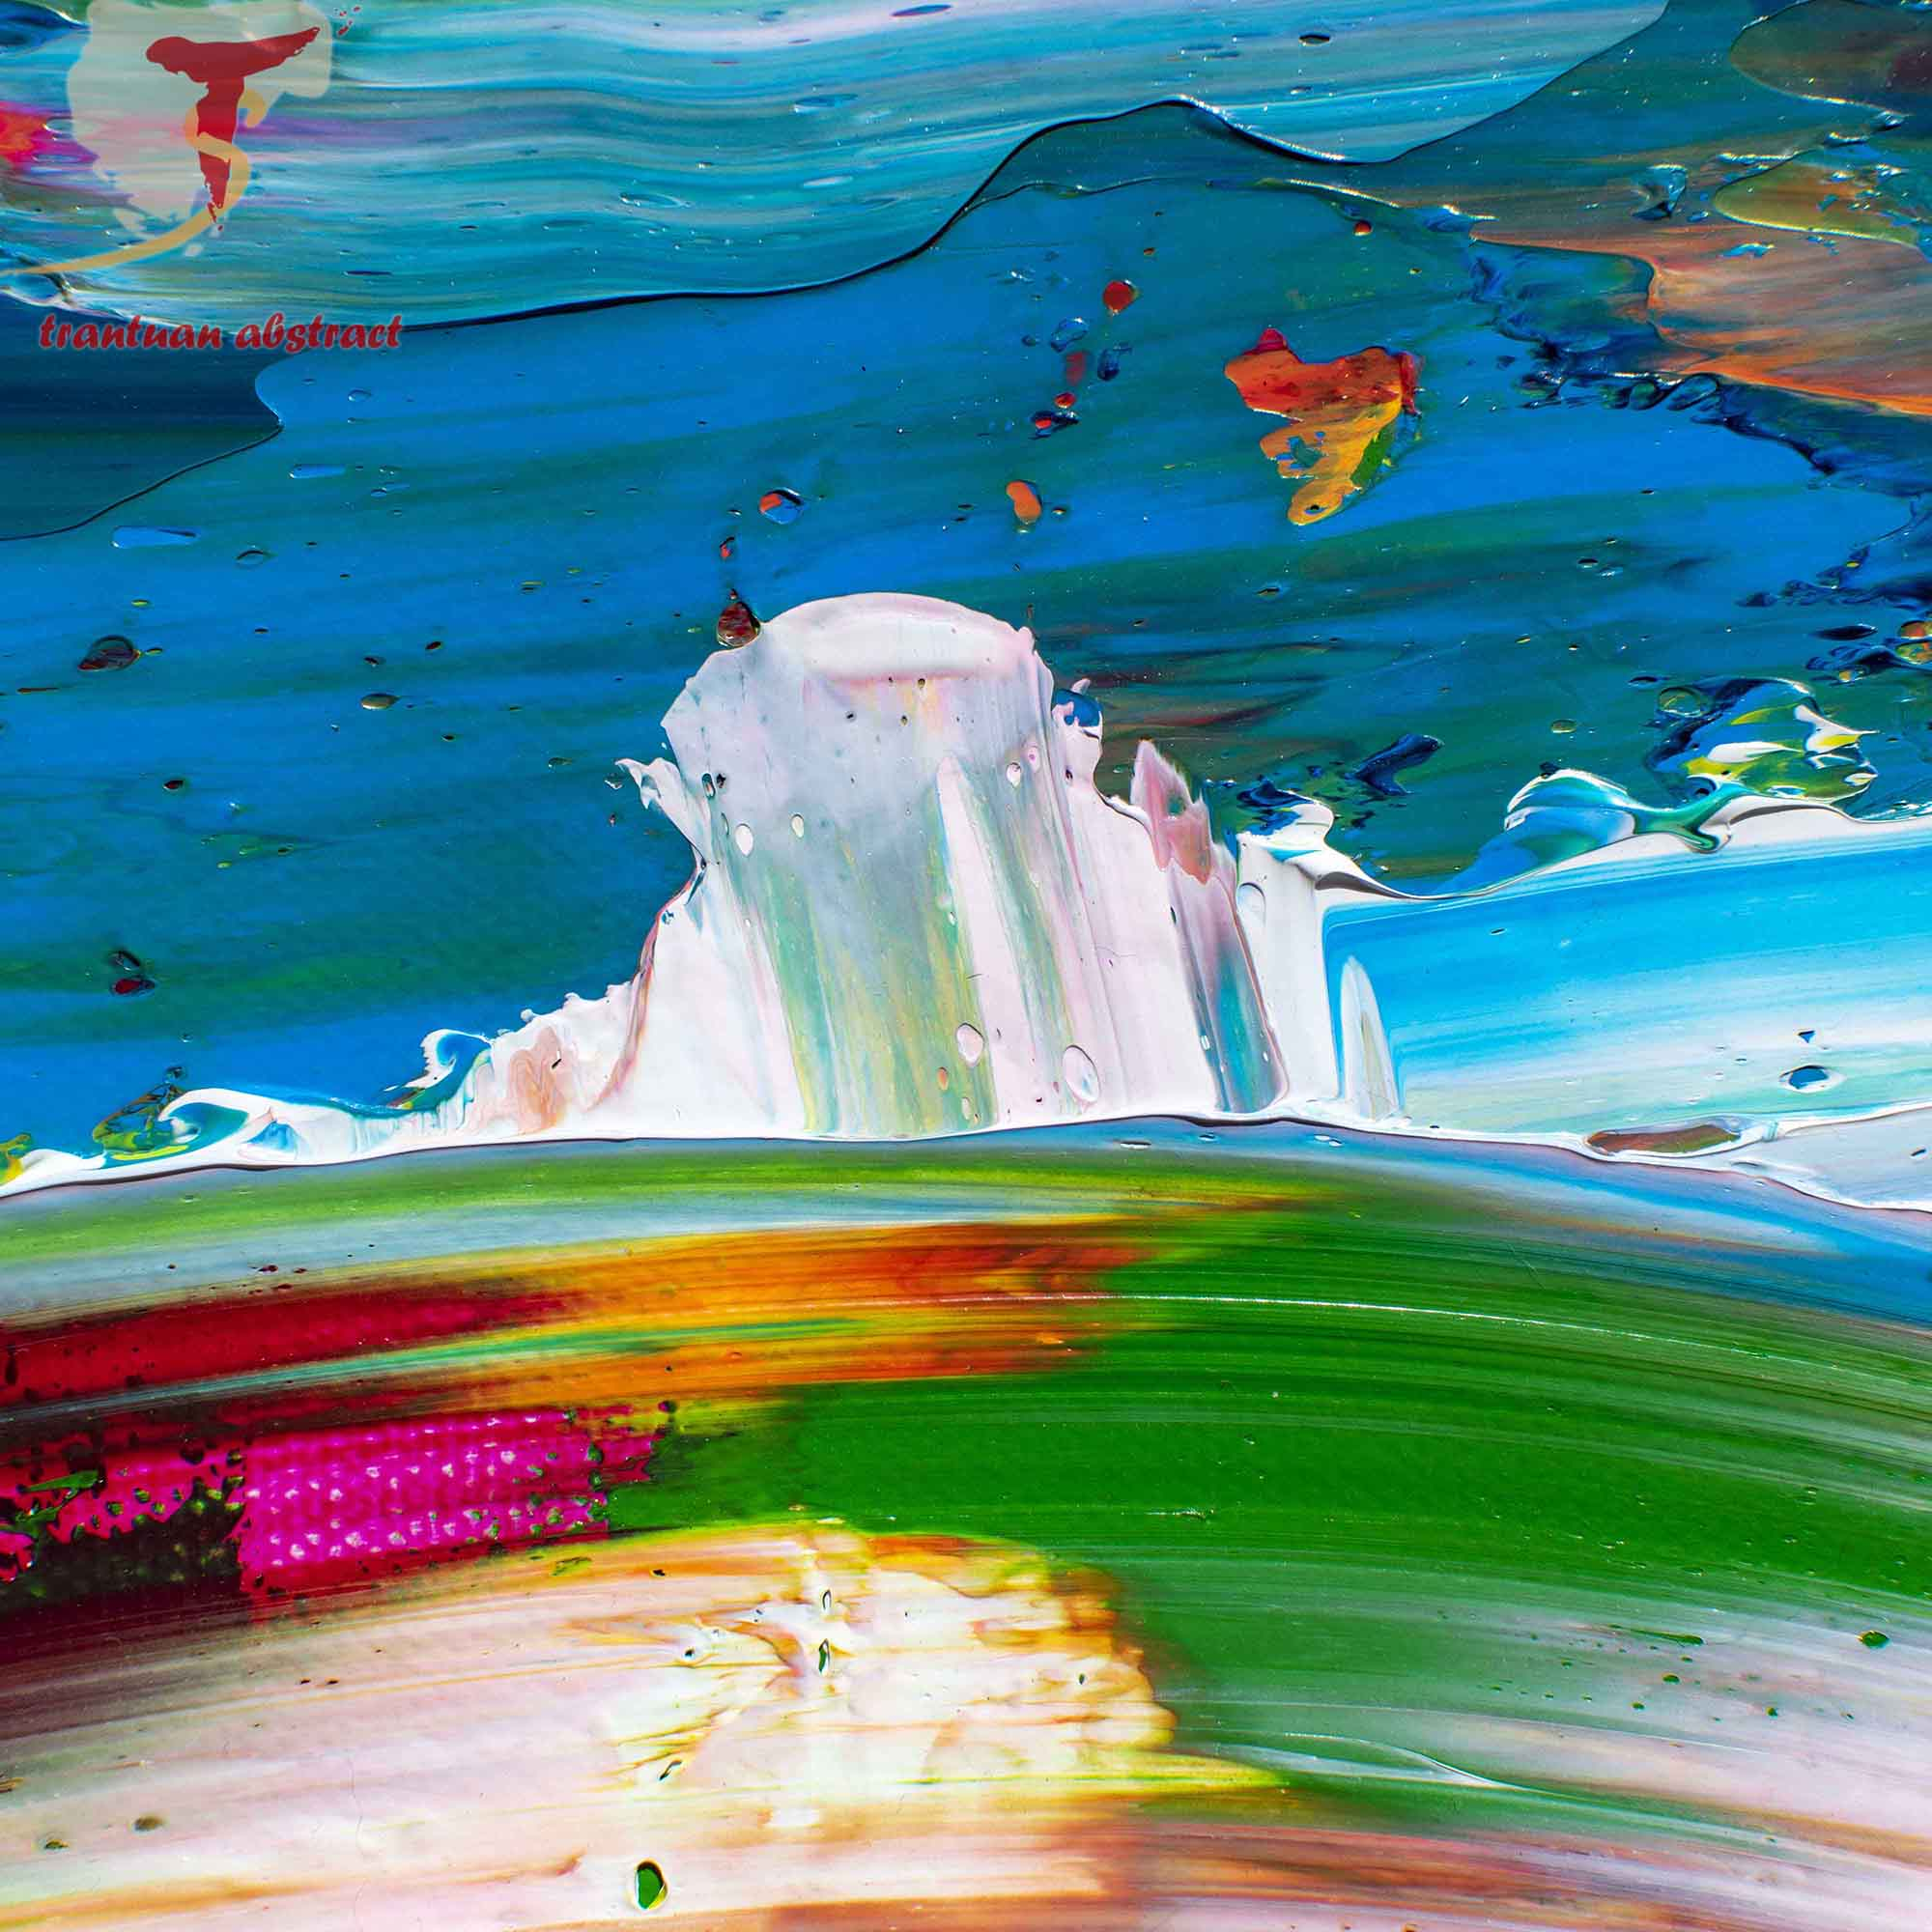 Tran Tuan Abstract Full of Life 2021 120 x 100 x 3 cm Acrylic on Canvas Painting Detail s (25)